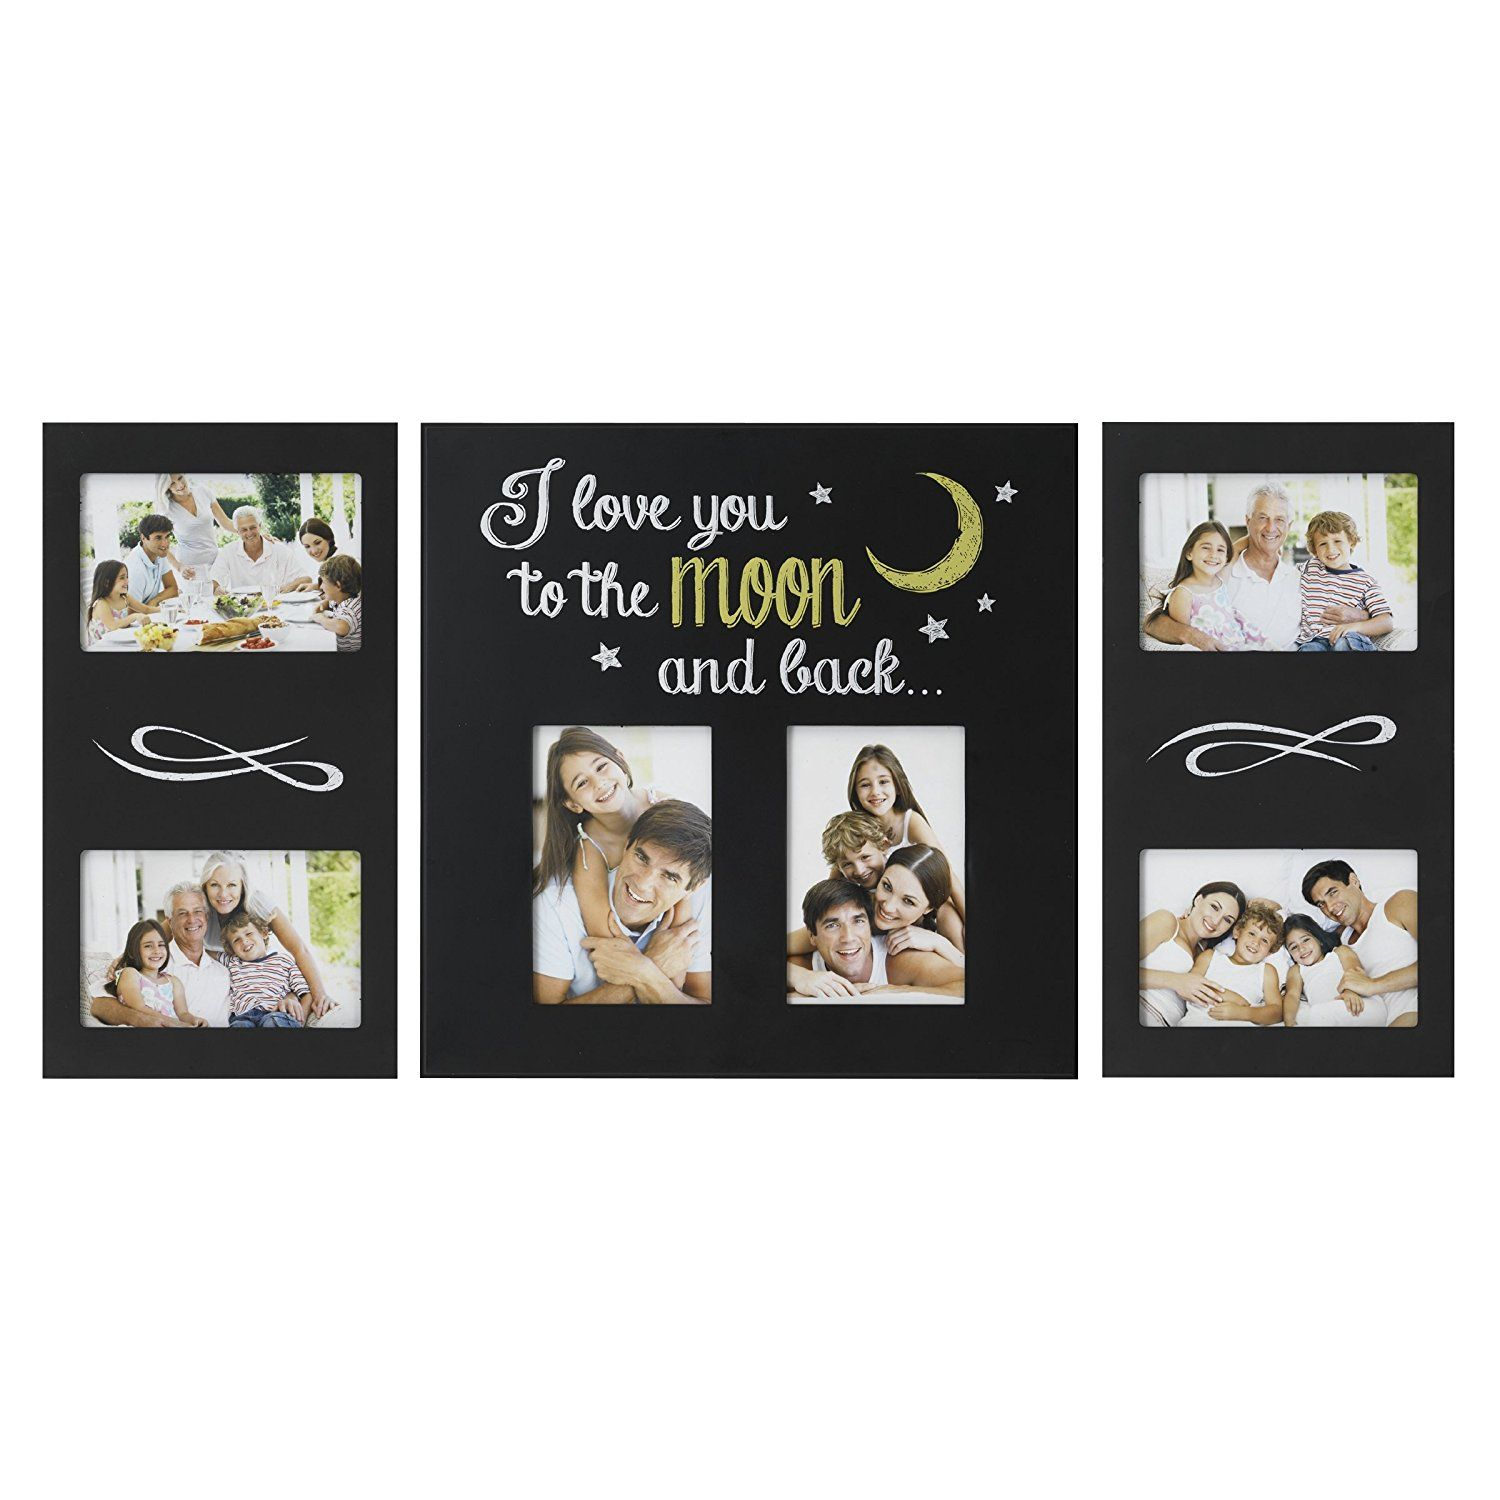 Melannco 3-Piece \'I Love You To The Moon and Back\' Plastic Collage ...